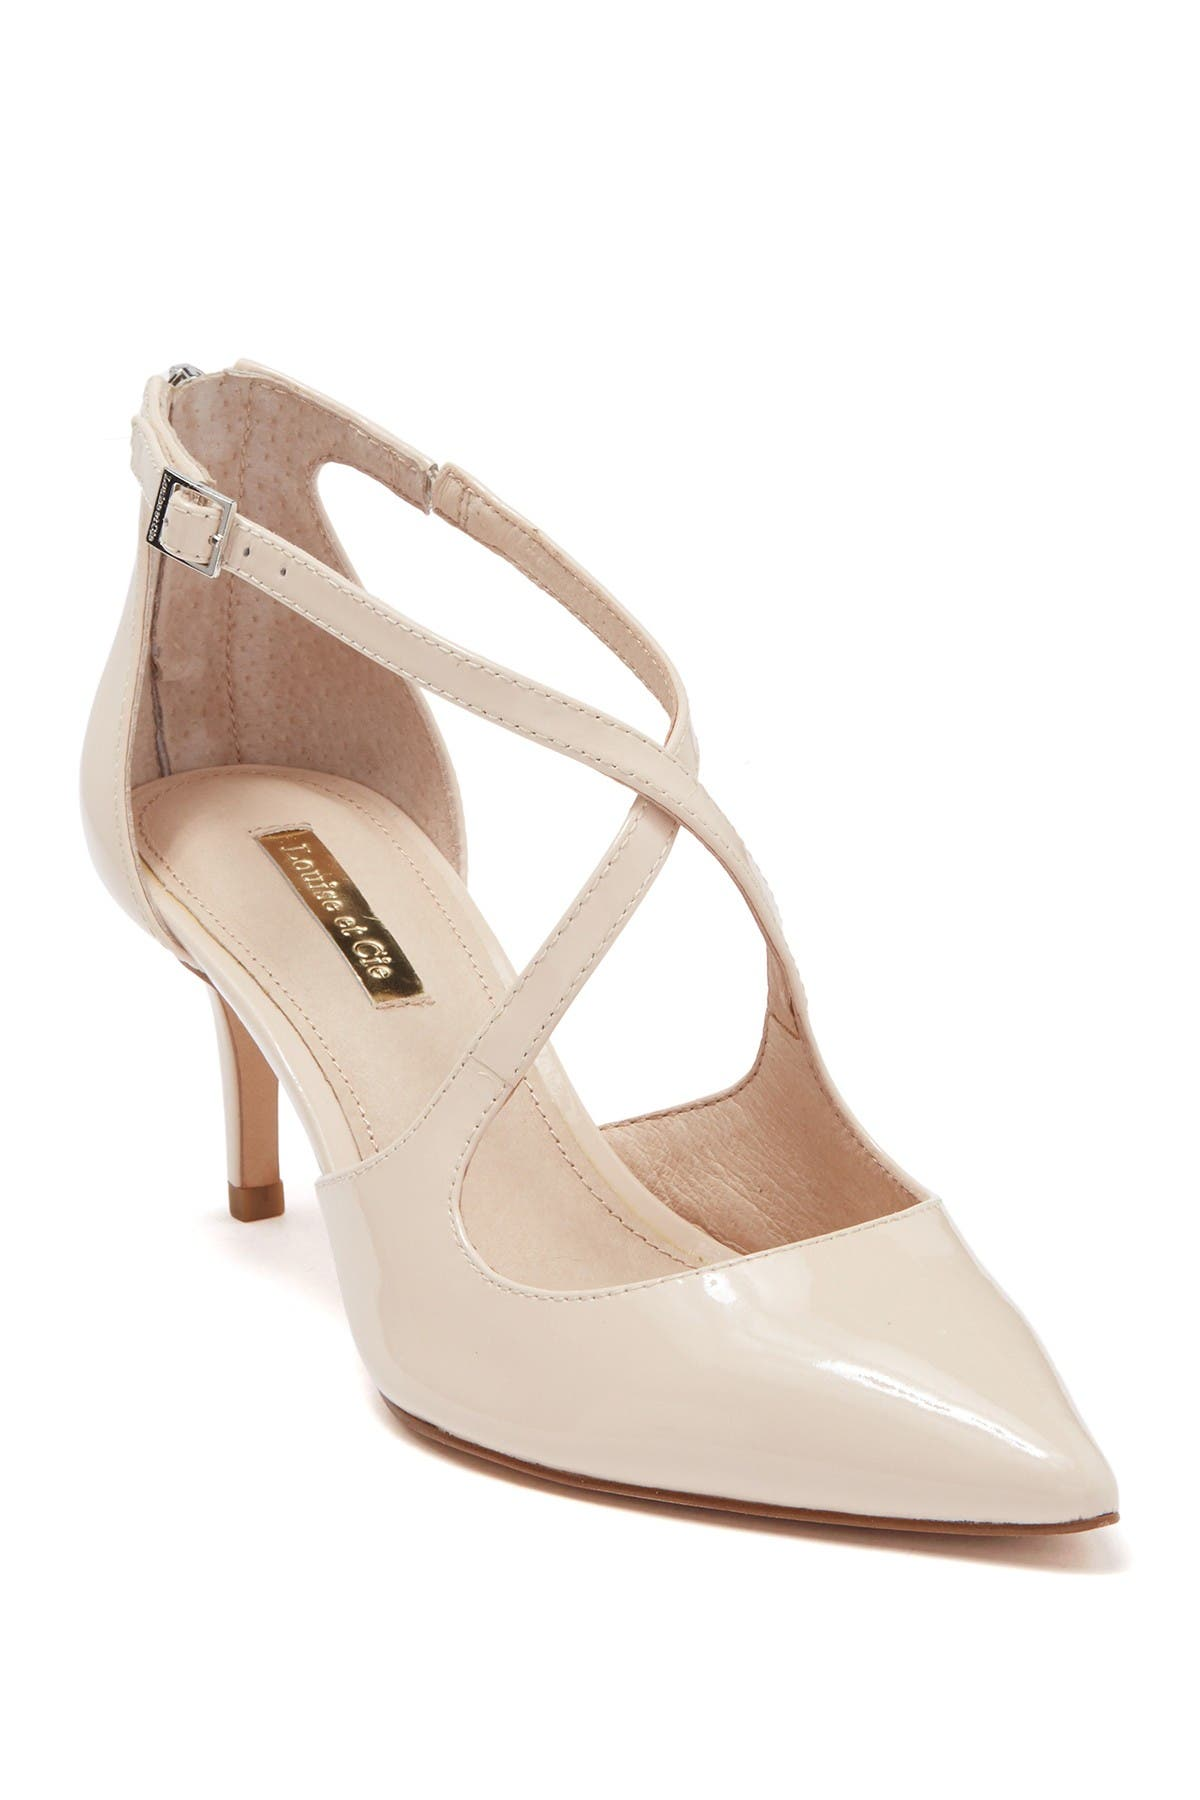 Image of Louise et Cie Jena Leather Stiletto Pump